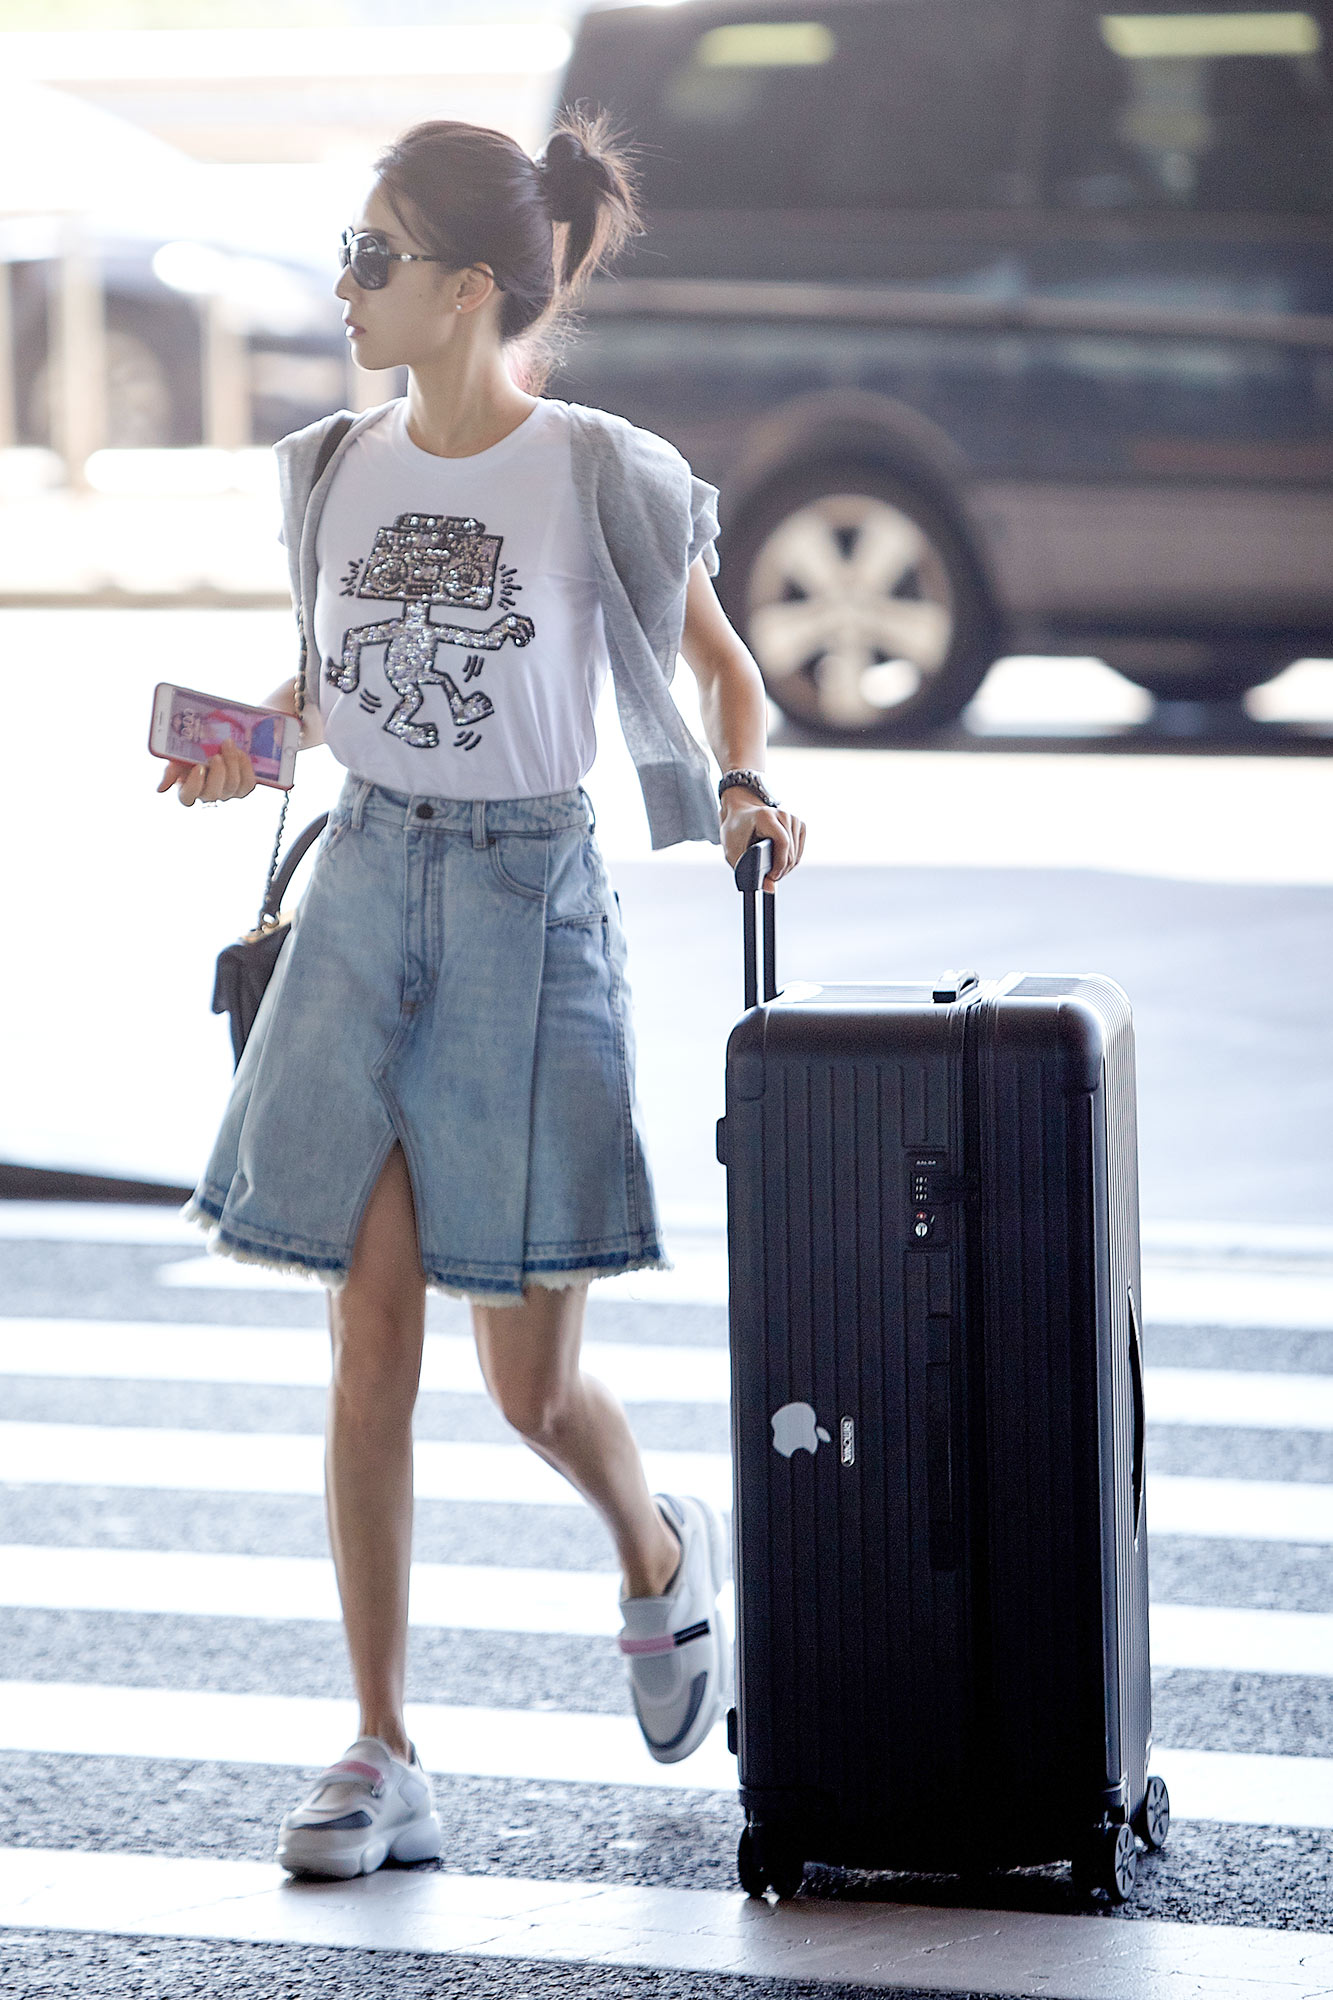 Nian li airport travel ball head to show the denim skirt white t clear and beautiful legs to attract the eyes